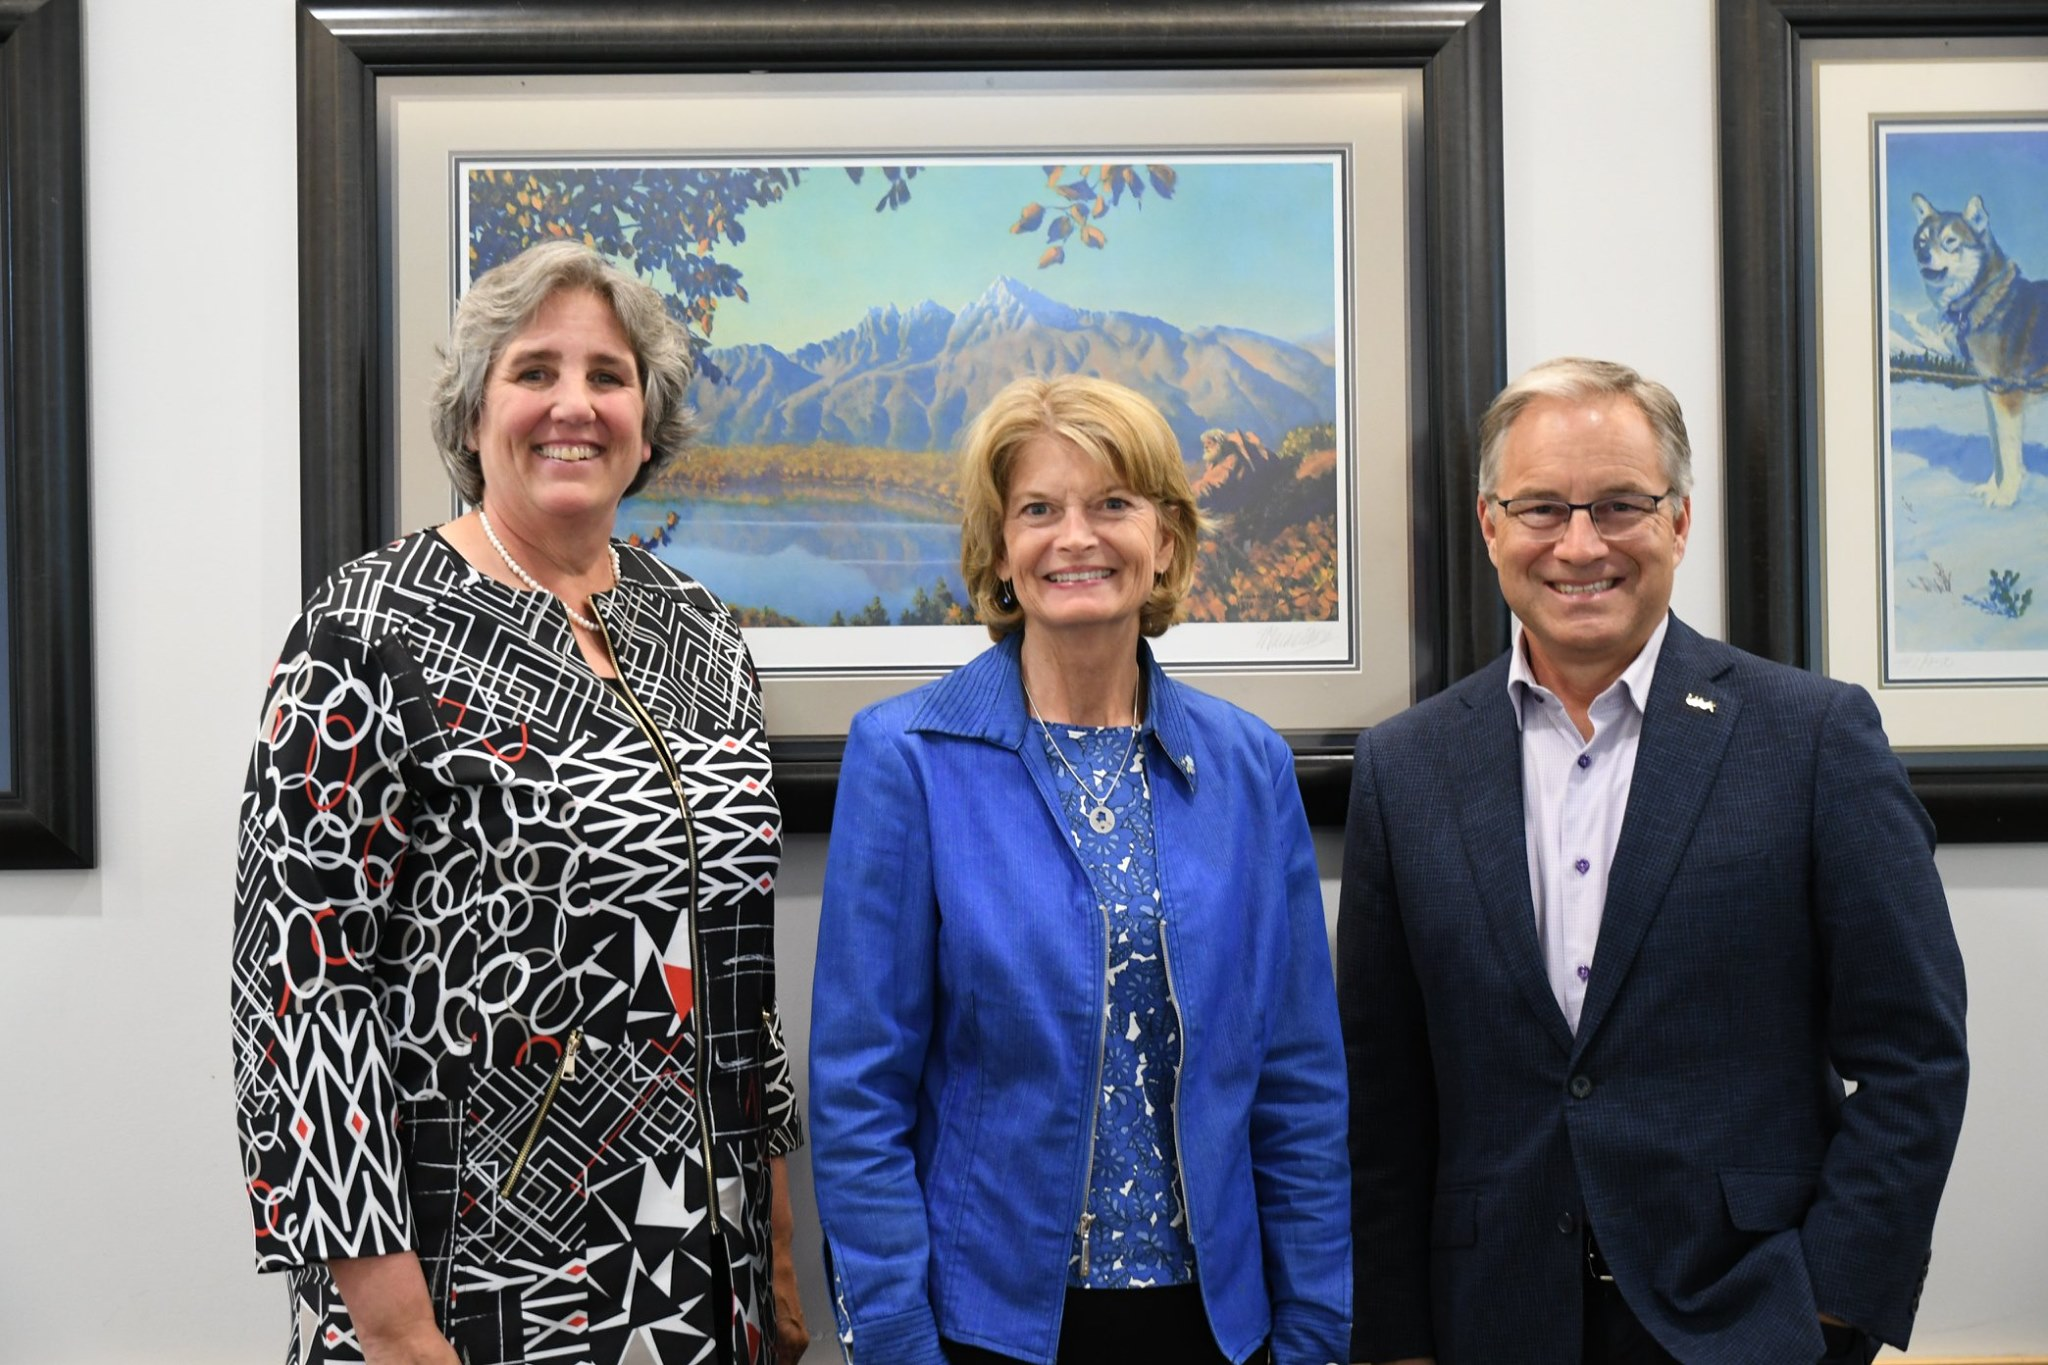 Murkowski with Pitney and Parnell